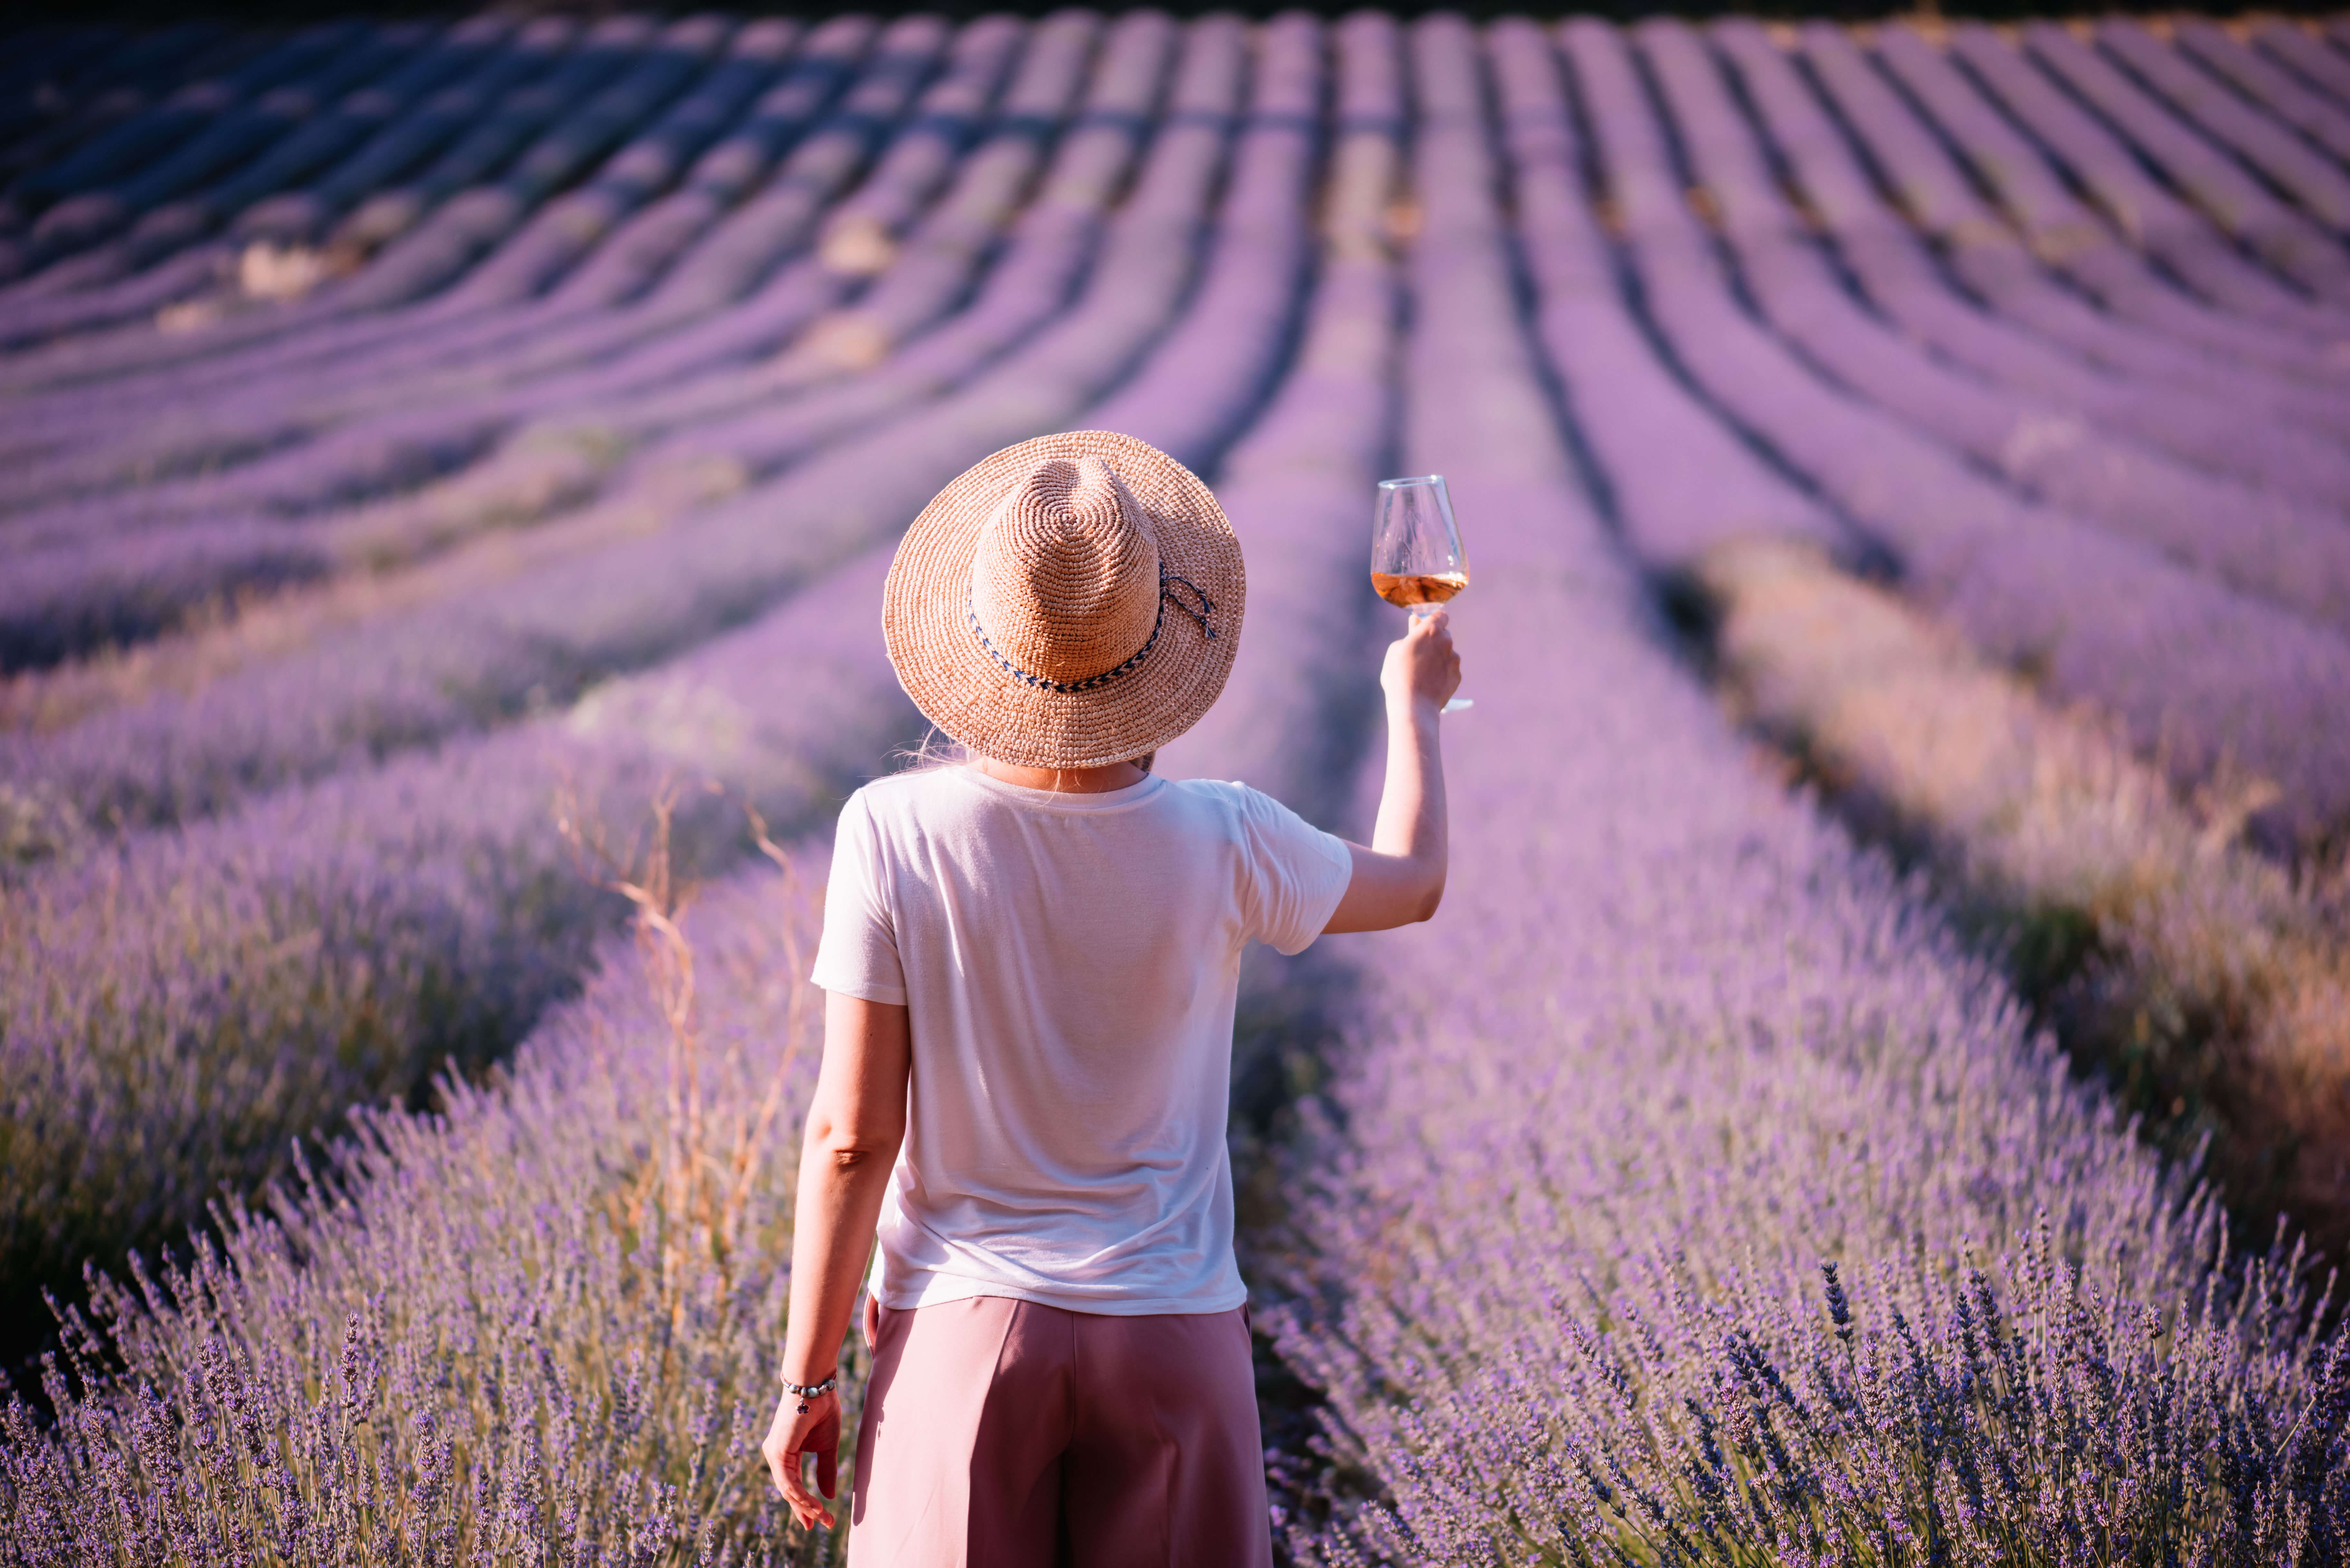 A woman holding wine glass amidst lavender field in Provence, France